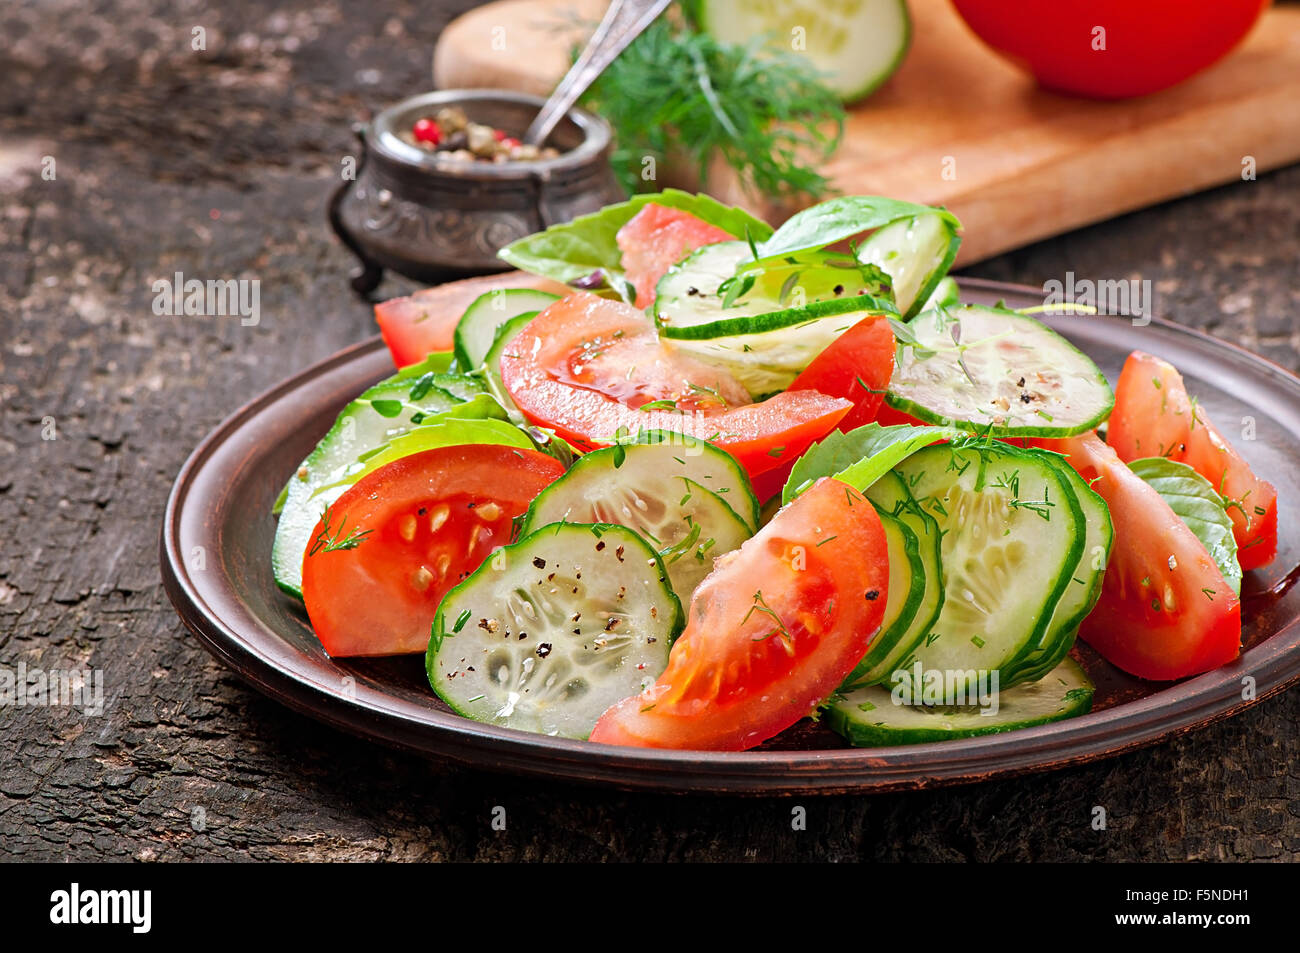 Tomato and cucumber salad with black pepper and basil - Stock Image